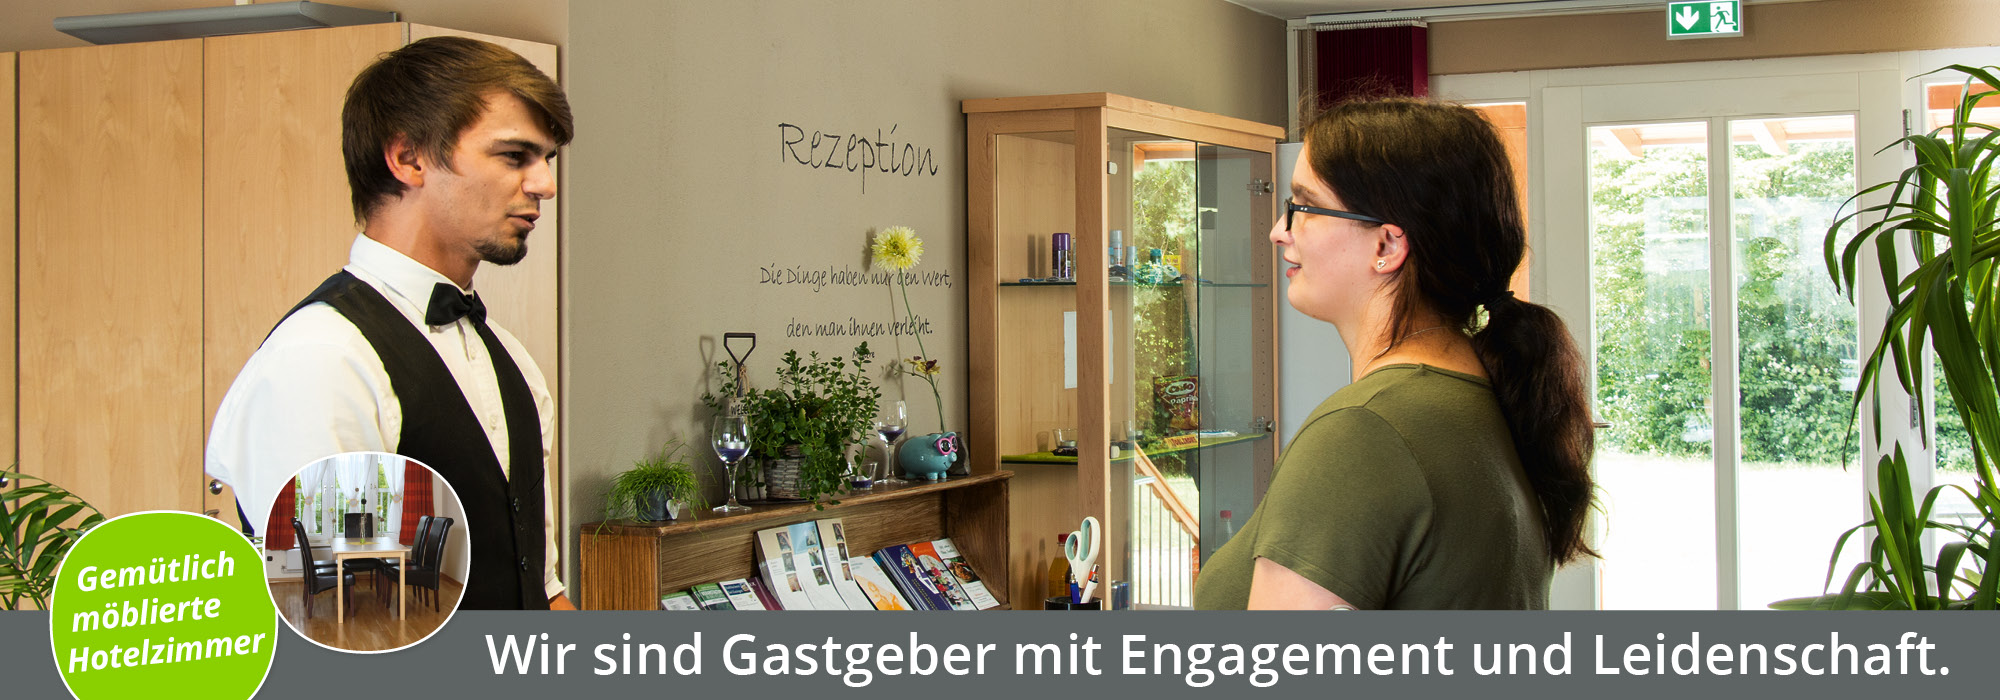 CAMPUS HOTEL RESTAURANT CATERING BAD KISSINGEN